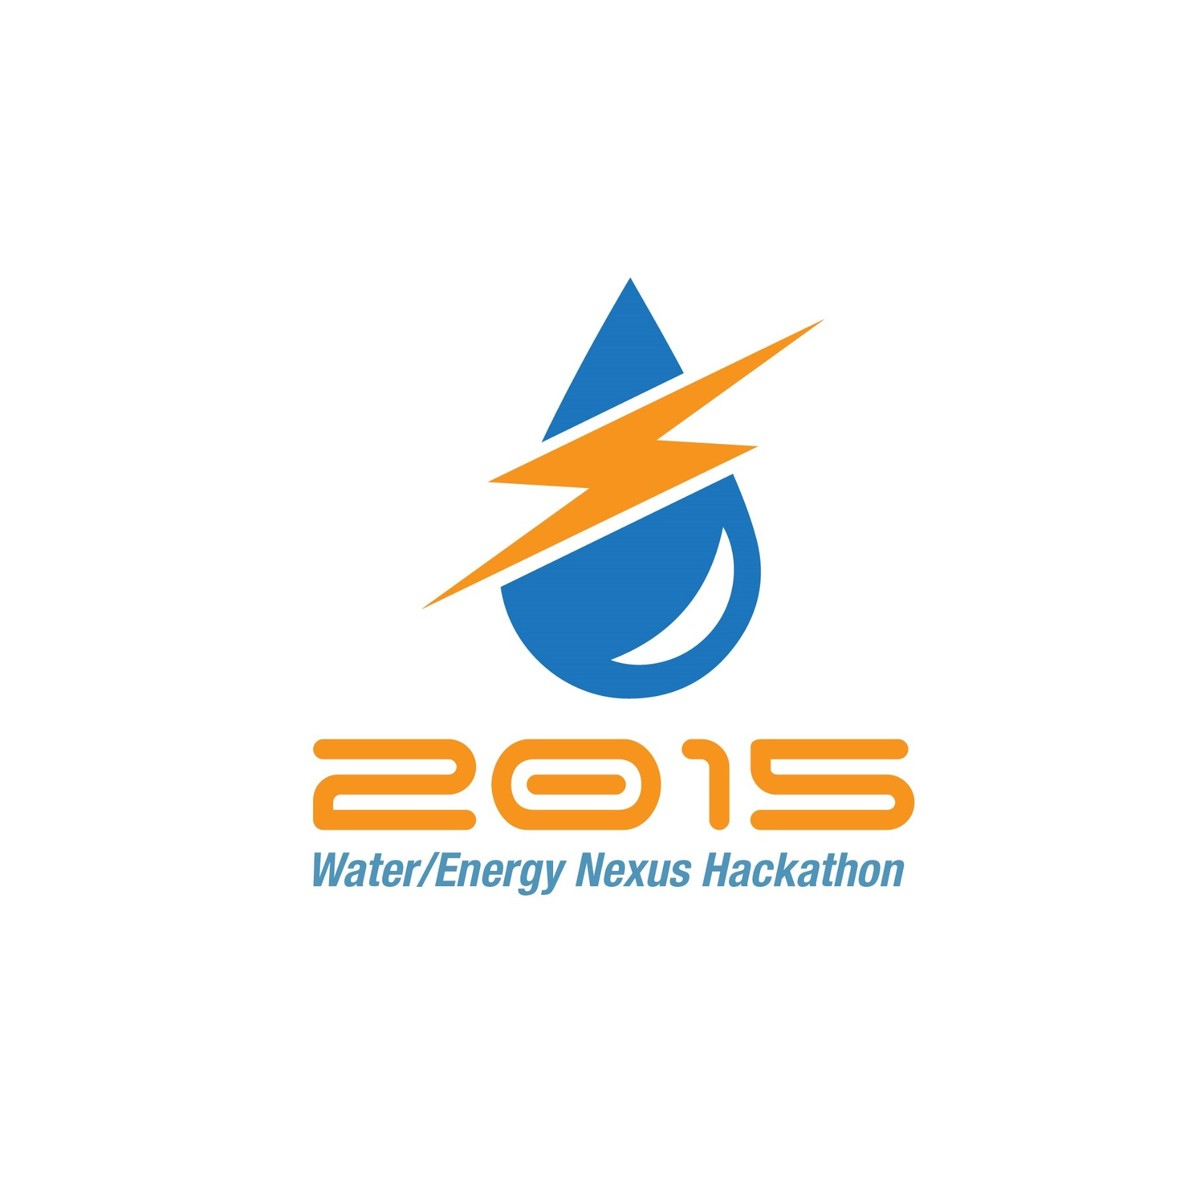 2015 Water/Energy Nexus